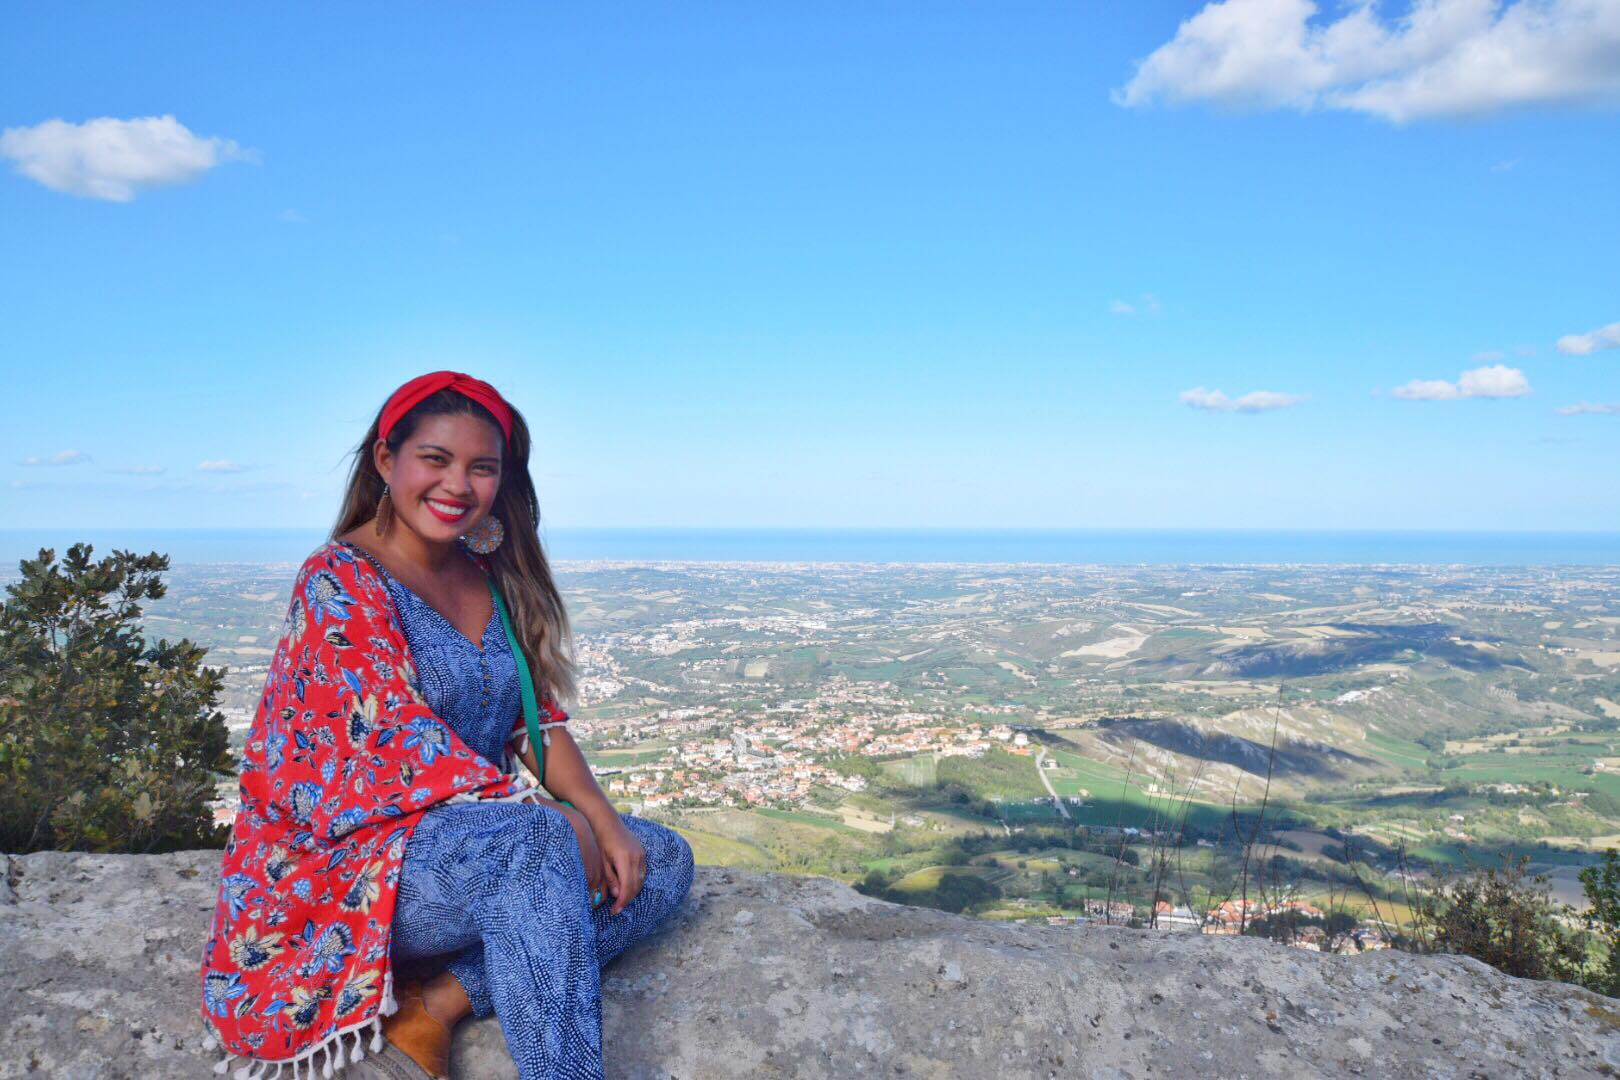 Kach Solo Travels Day 42: Hello from San Marino, my country 114! ❤️